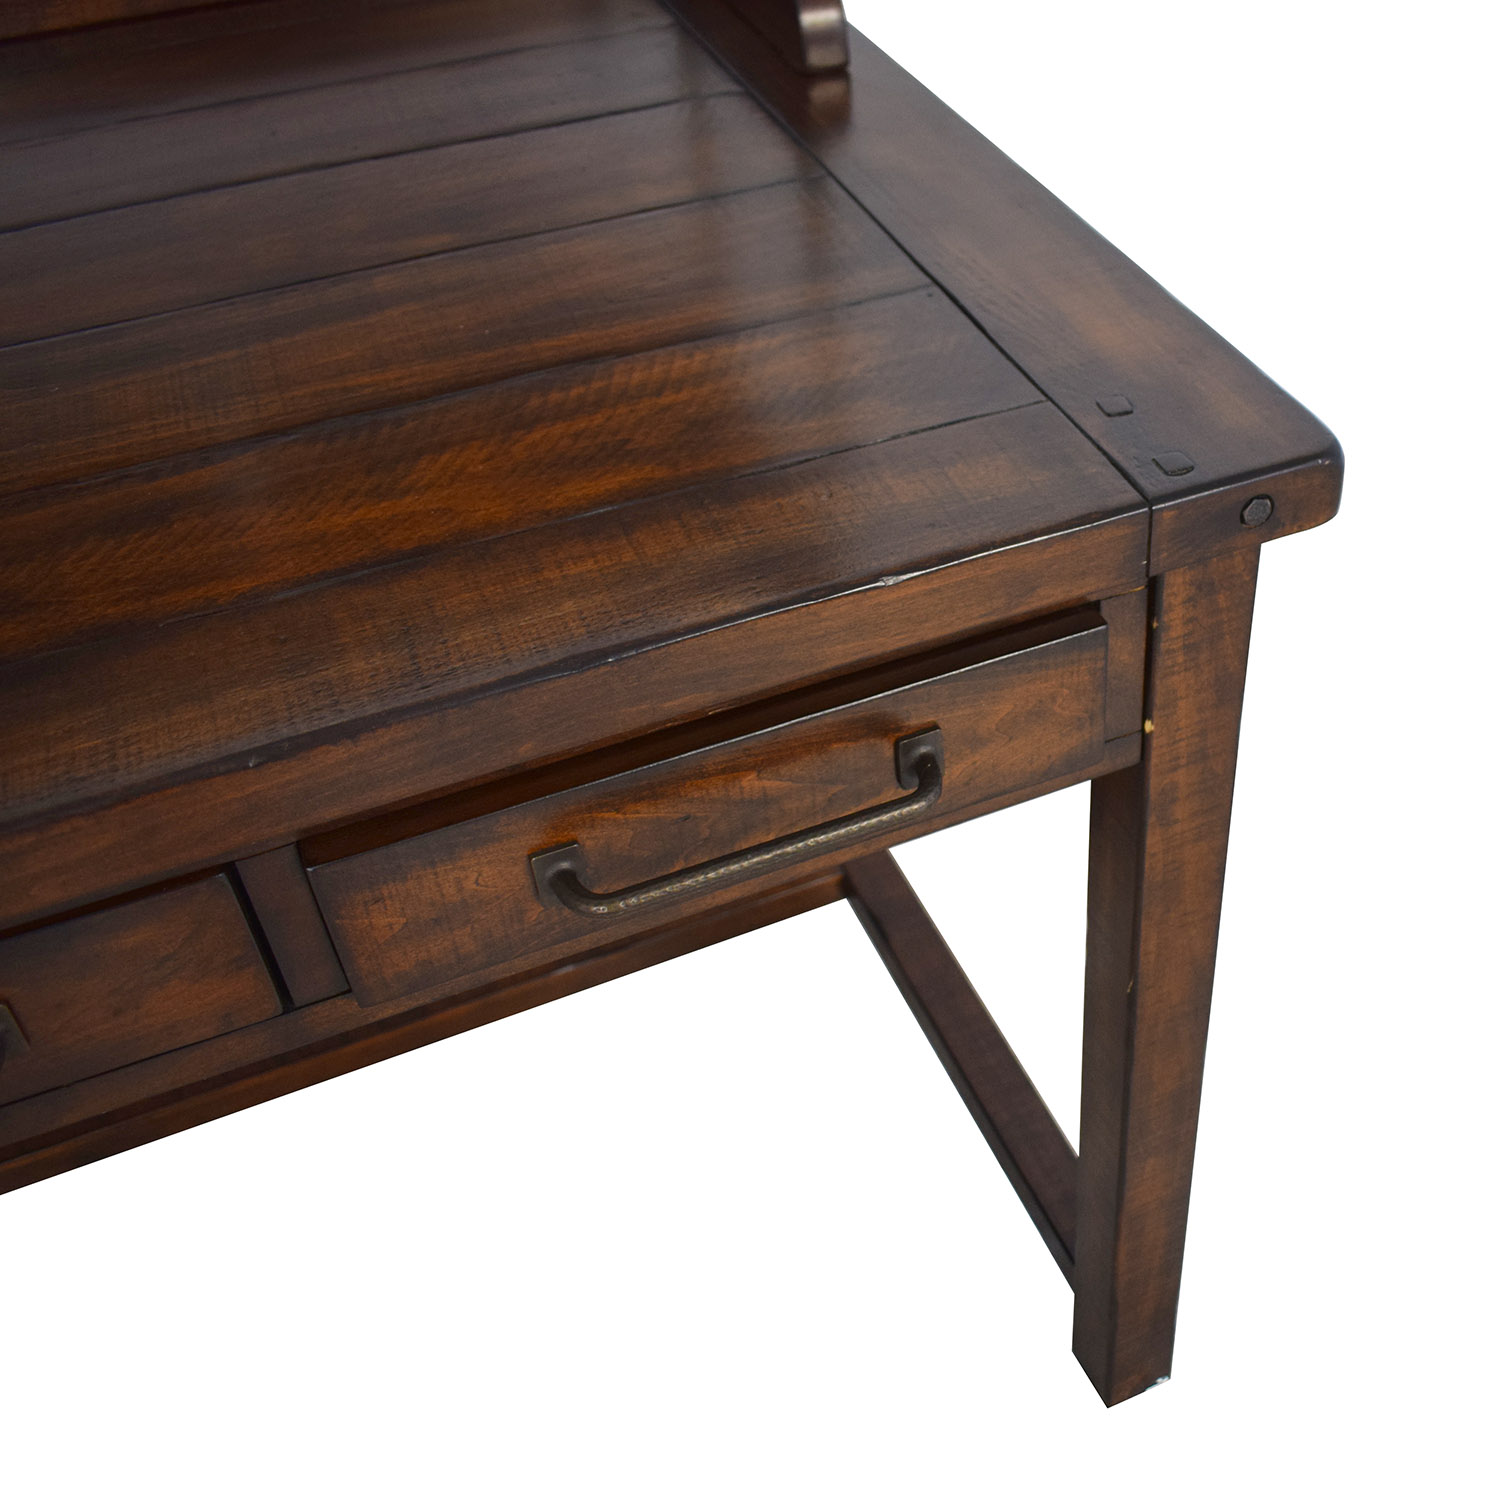 Pottery Barn Pottery Barn Benchwright Desk with Hutch price